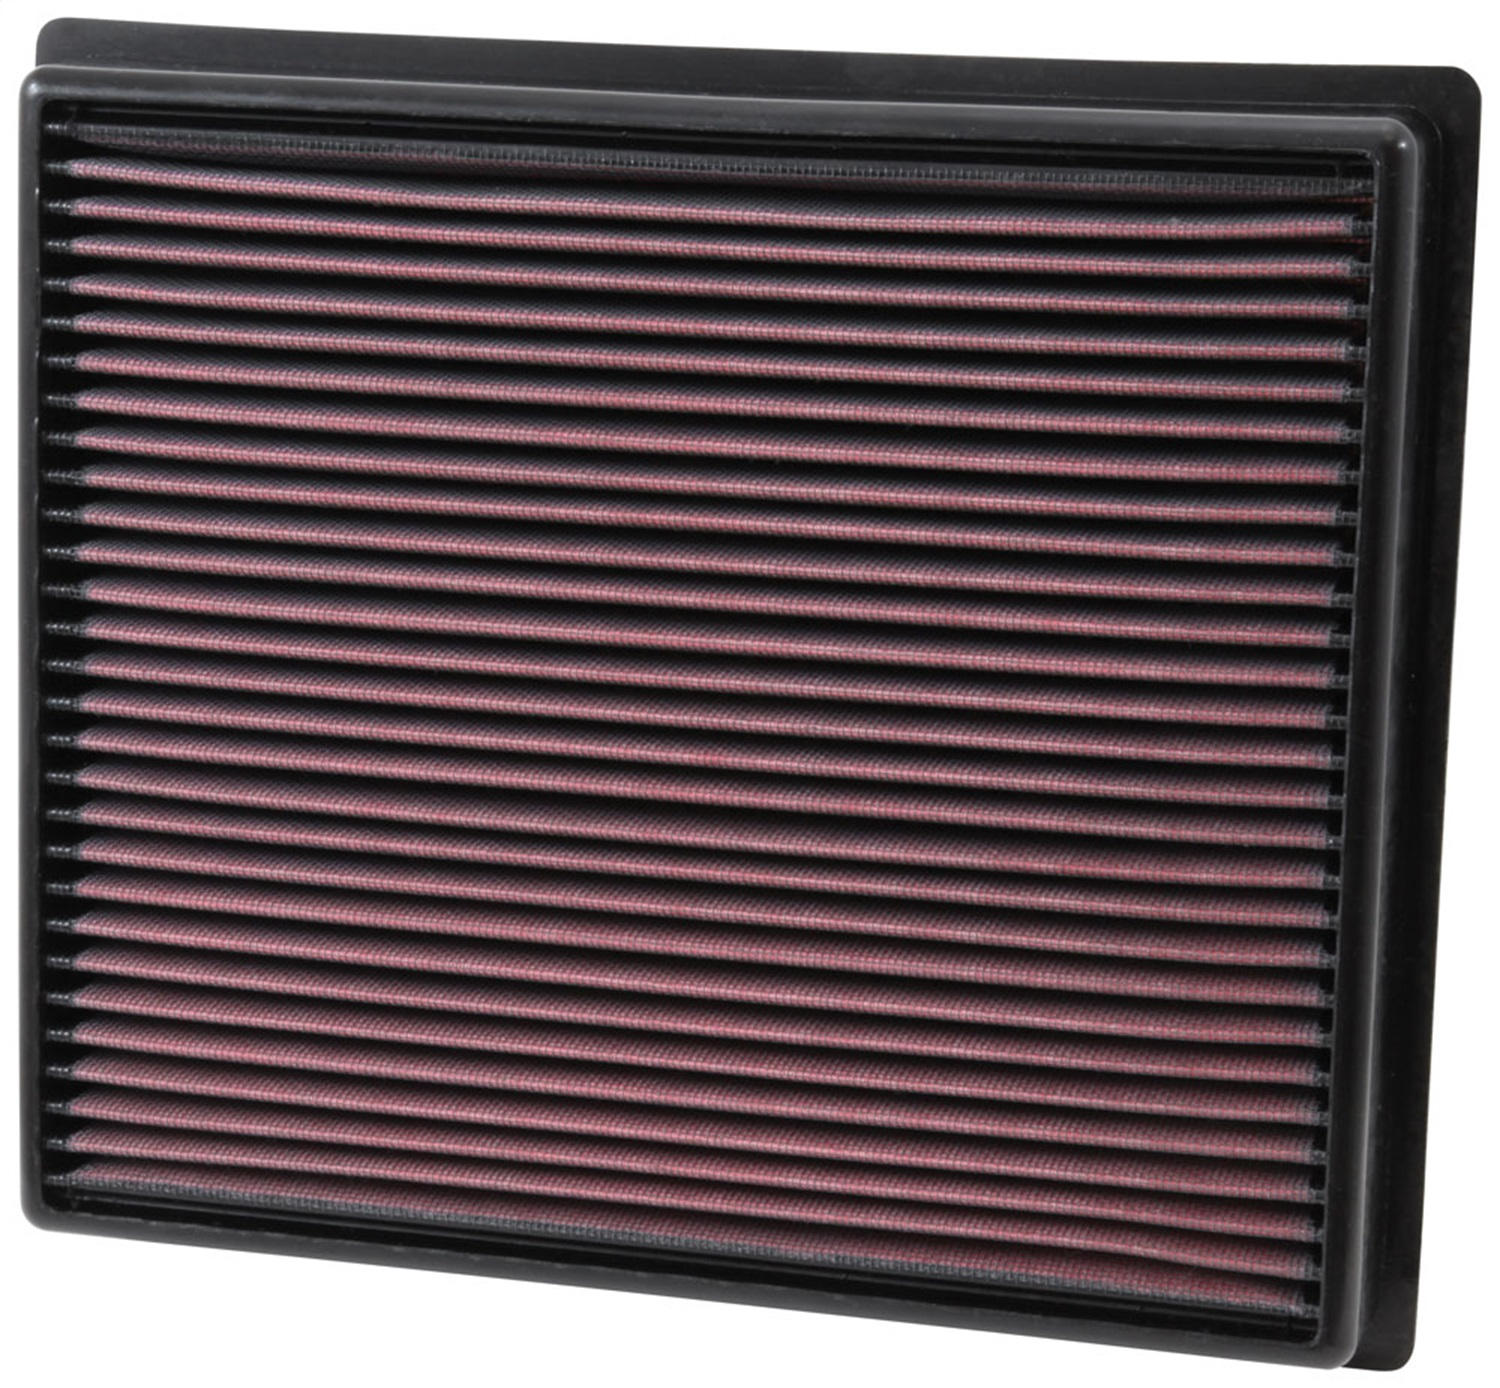 K&N Filters 33-5017 Air Filter Fits 14-15 Sequoia Tundra 33-5017